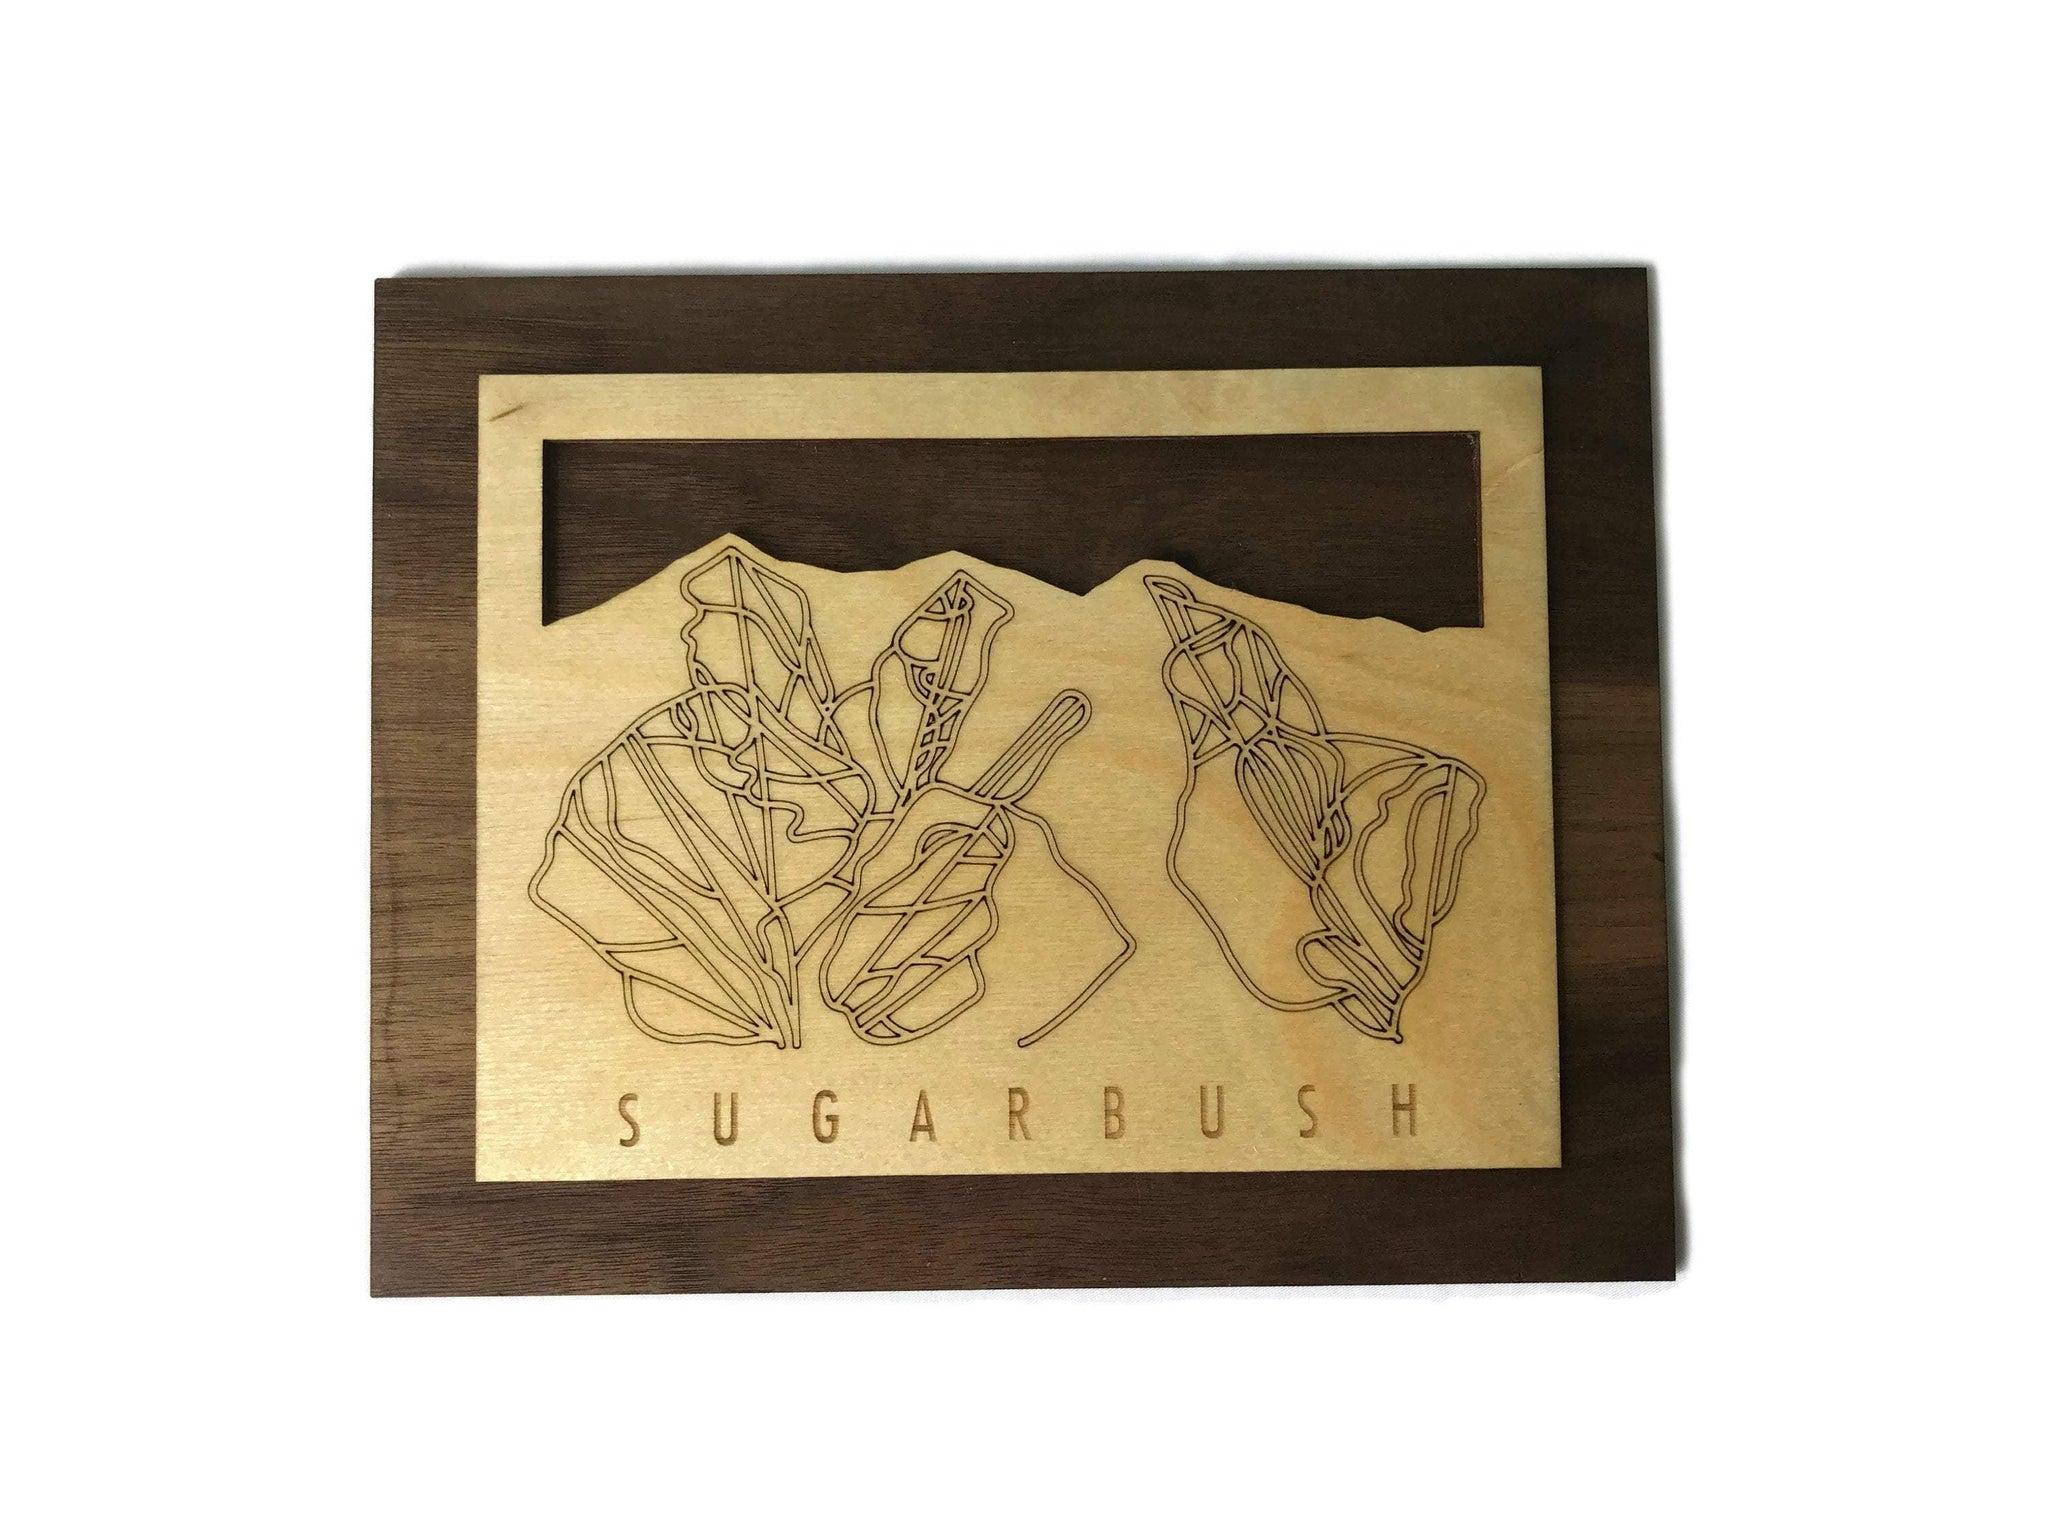 Sugarbush Small Ski Decor Trail Map Art - MountainCut